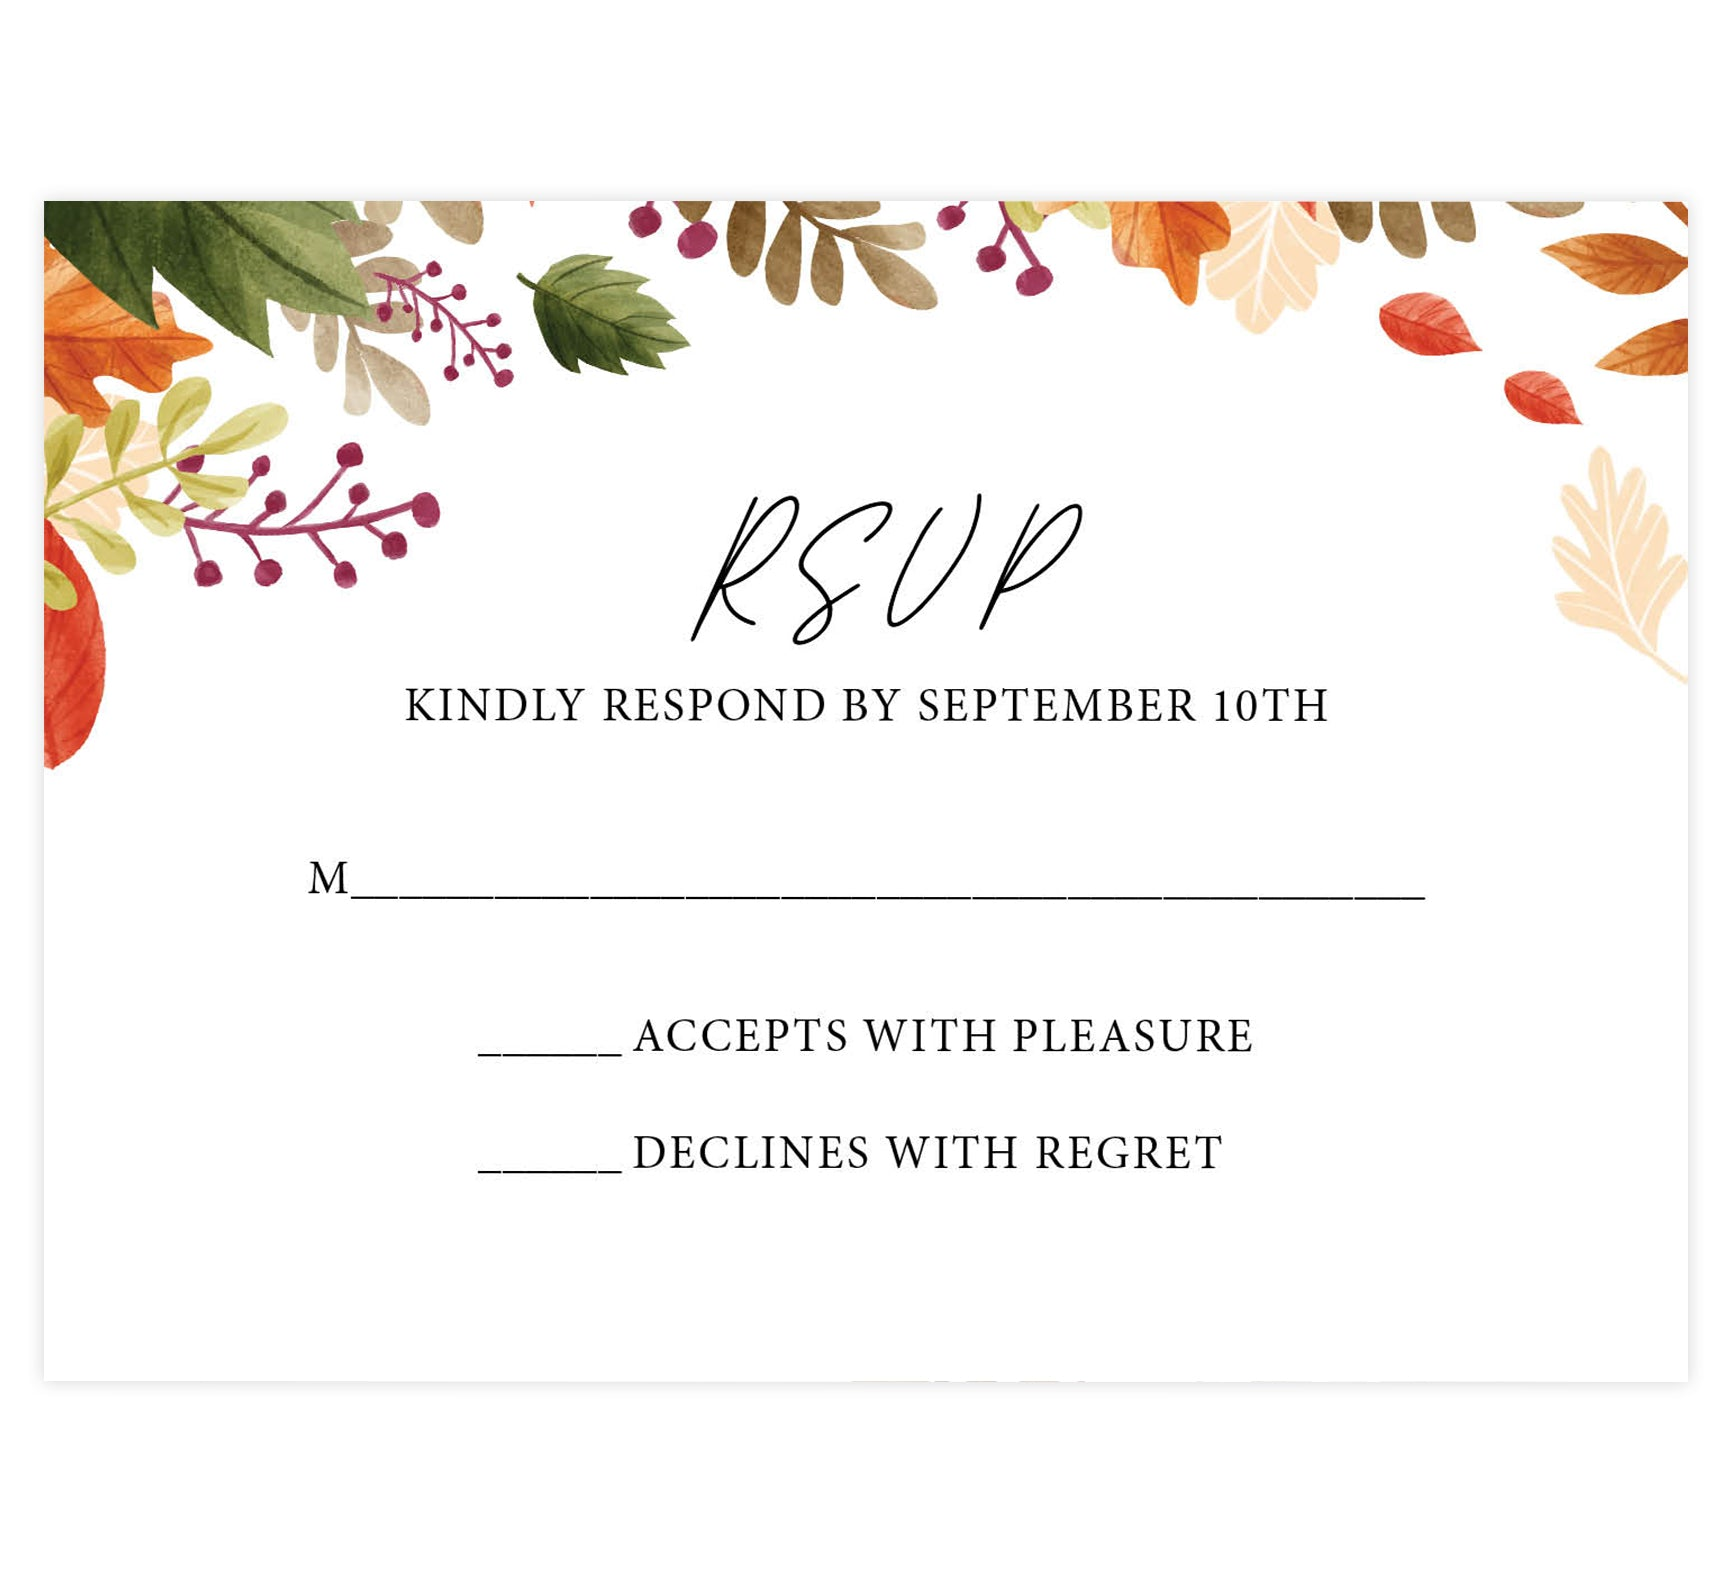 Rustic Fall wedding response card; white background with black text and leaves on the top edge